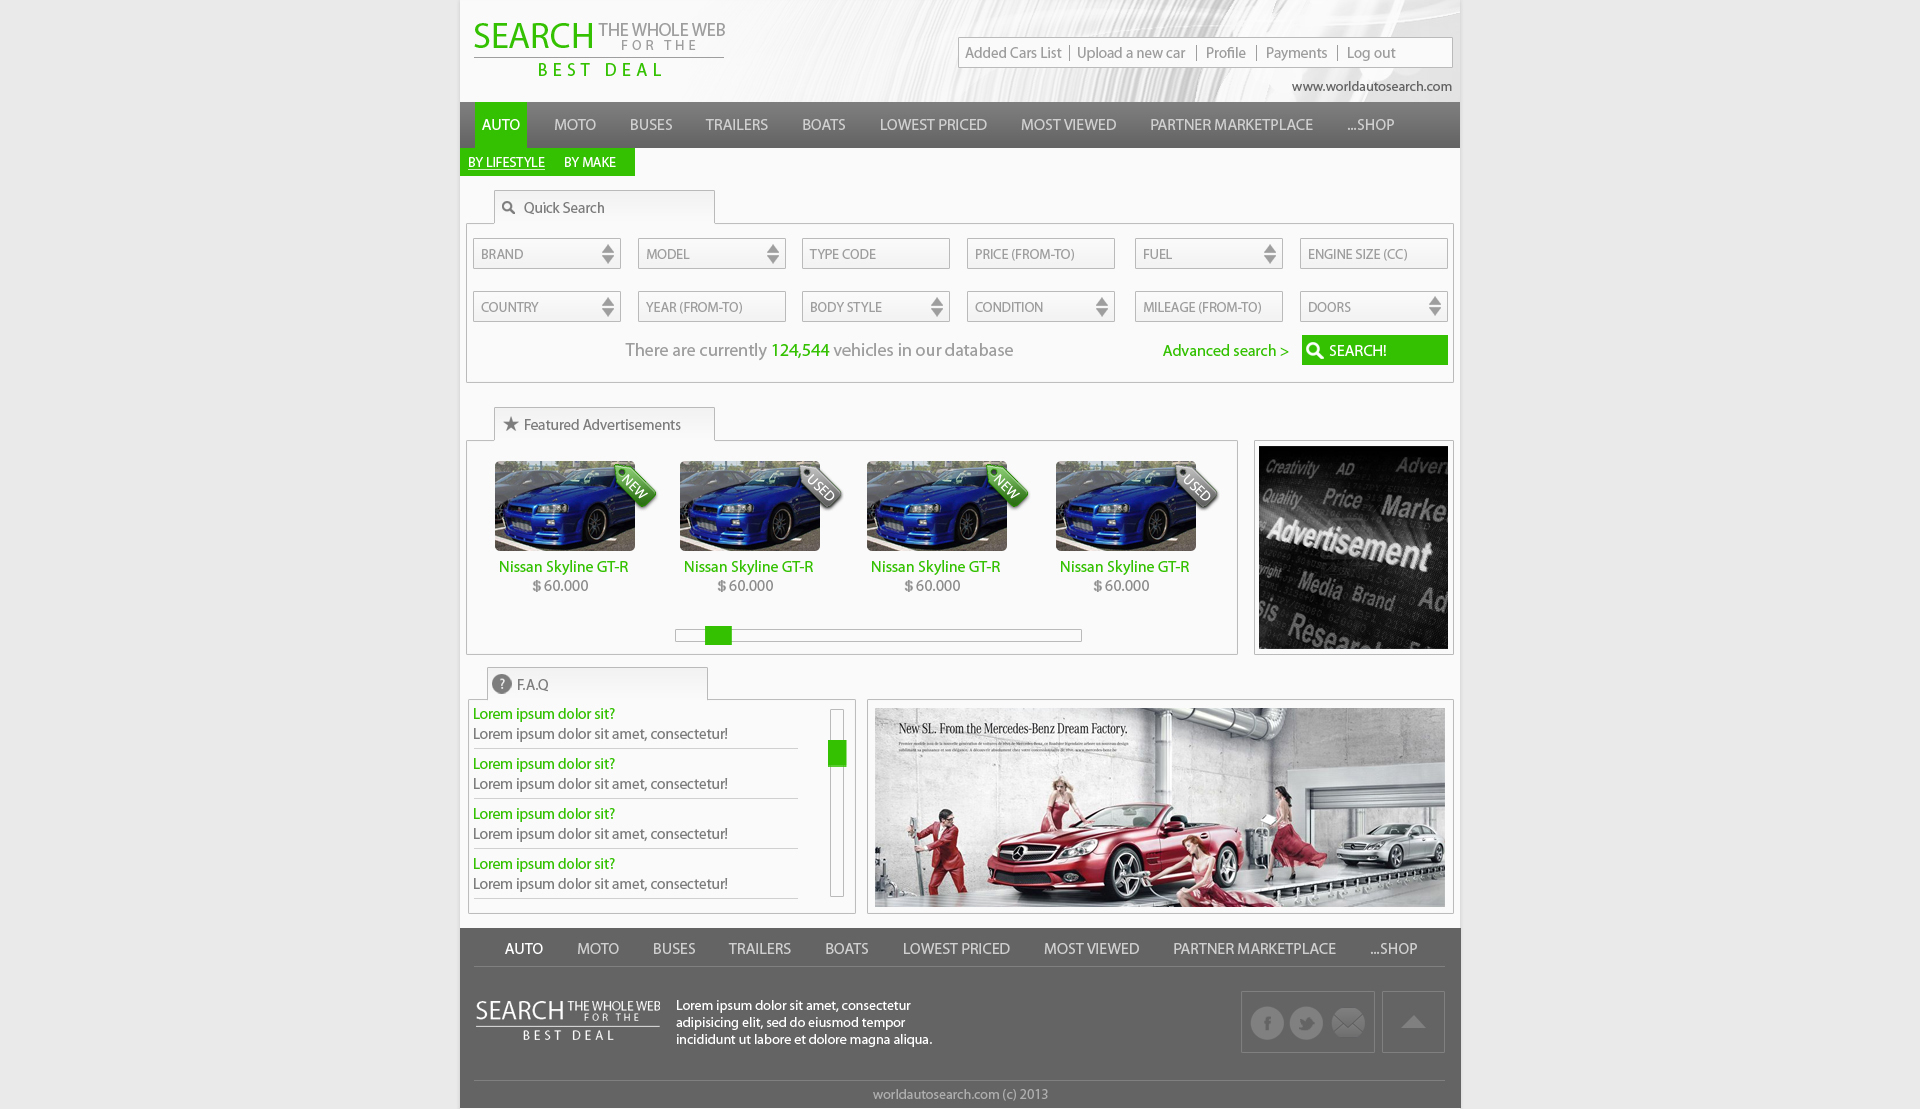 World Auto Search website design by SkinnyDesigns